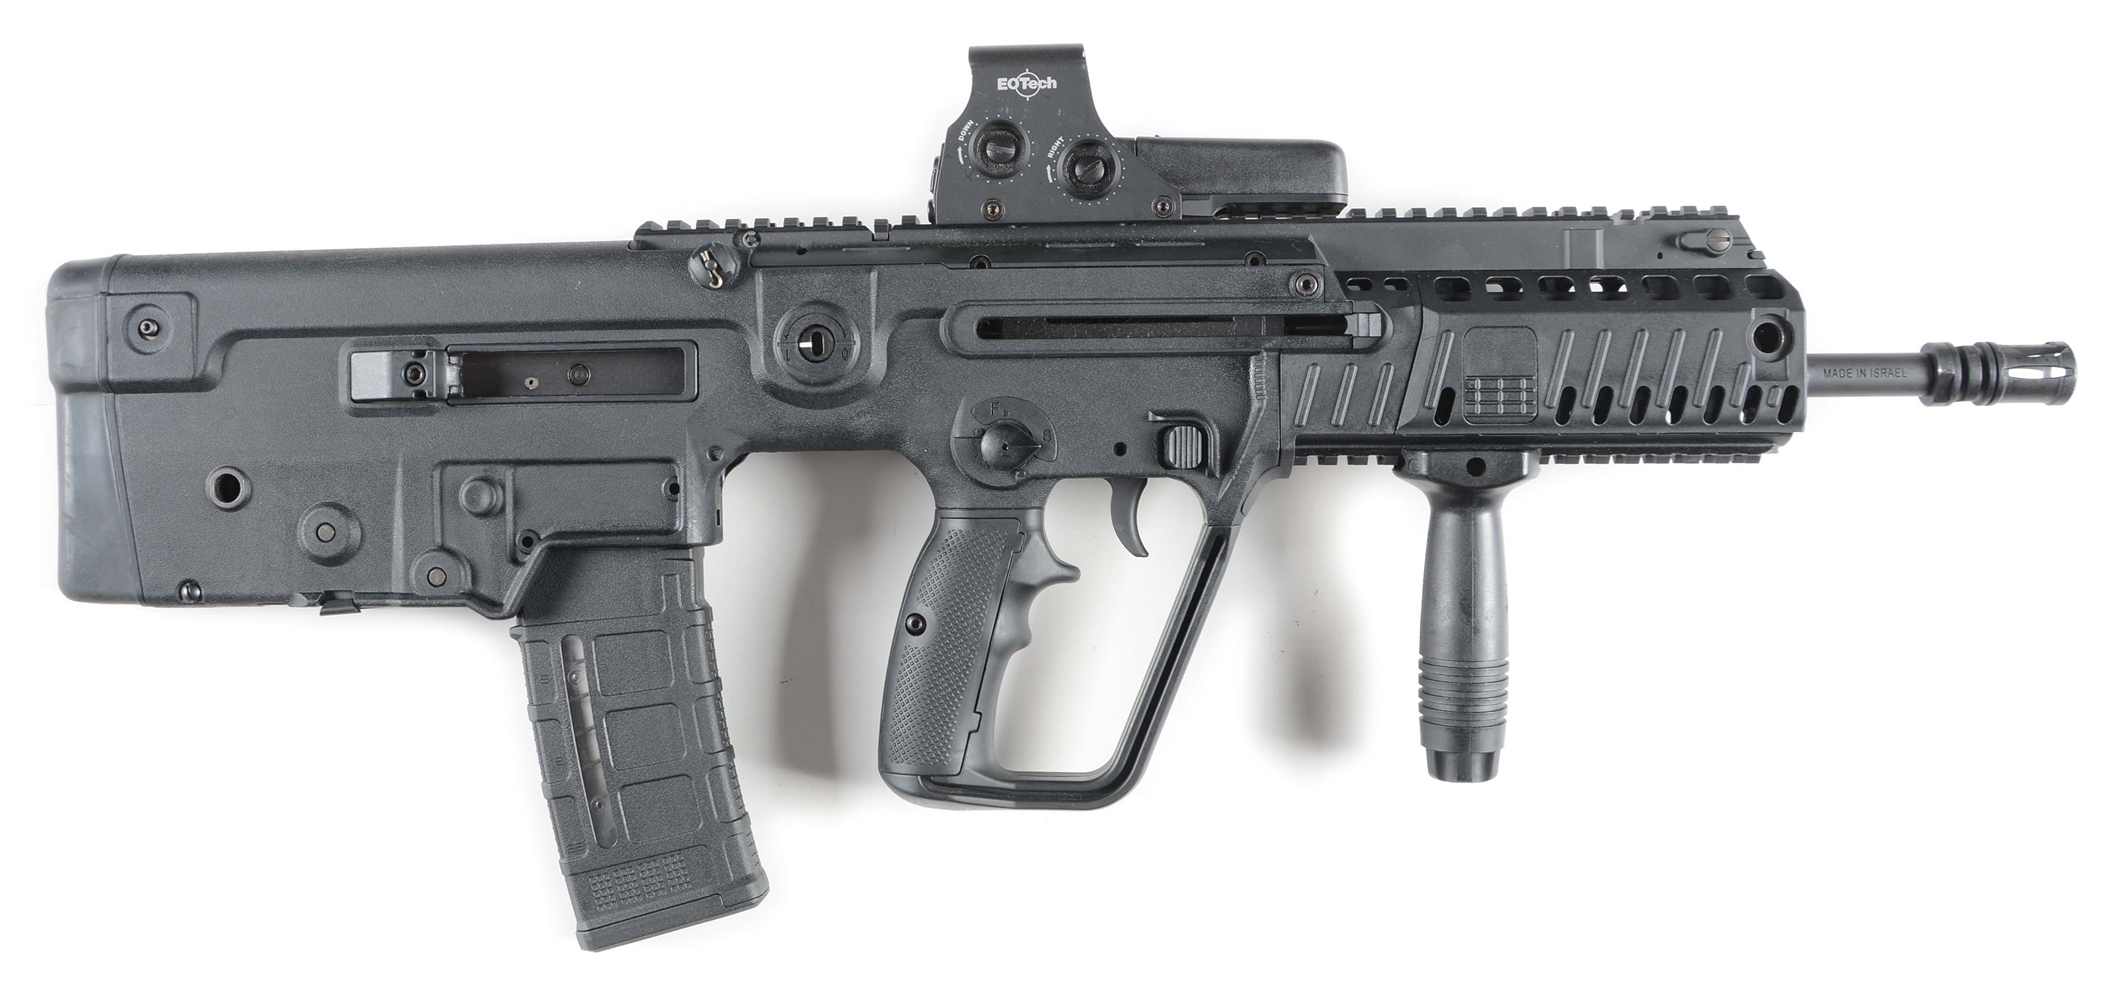 (M) IWI Tavor Model X95 Semi-Automatic Bullpup Rifle.